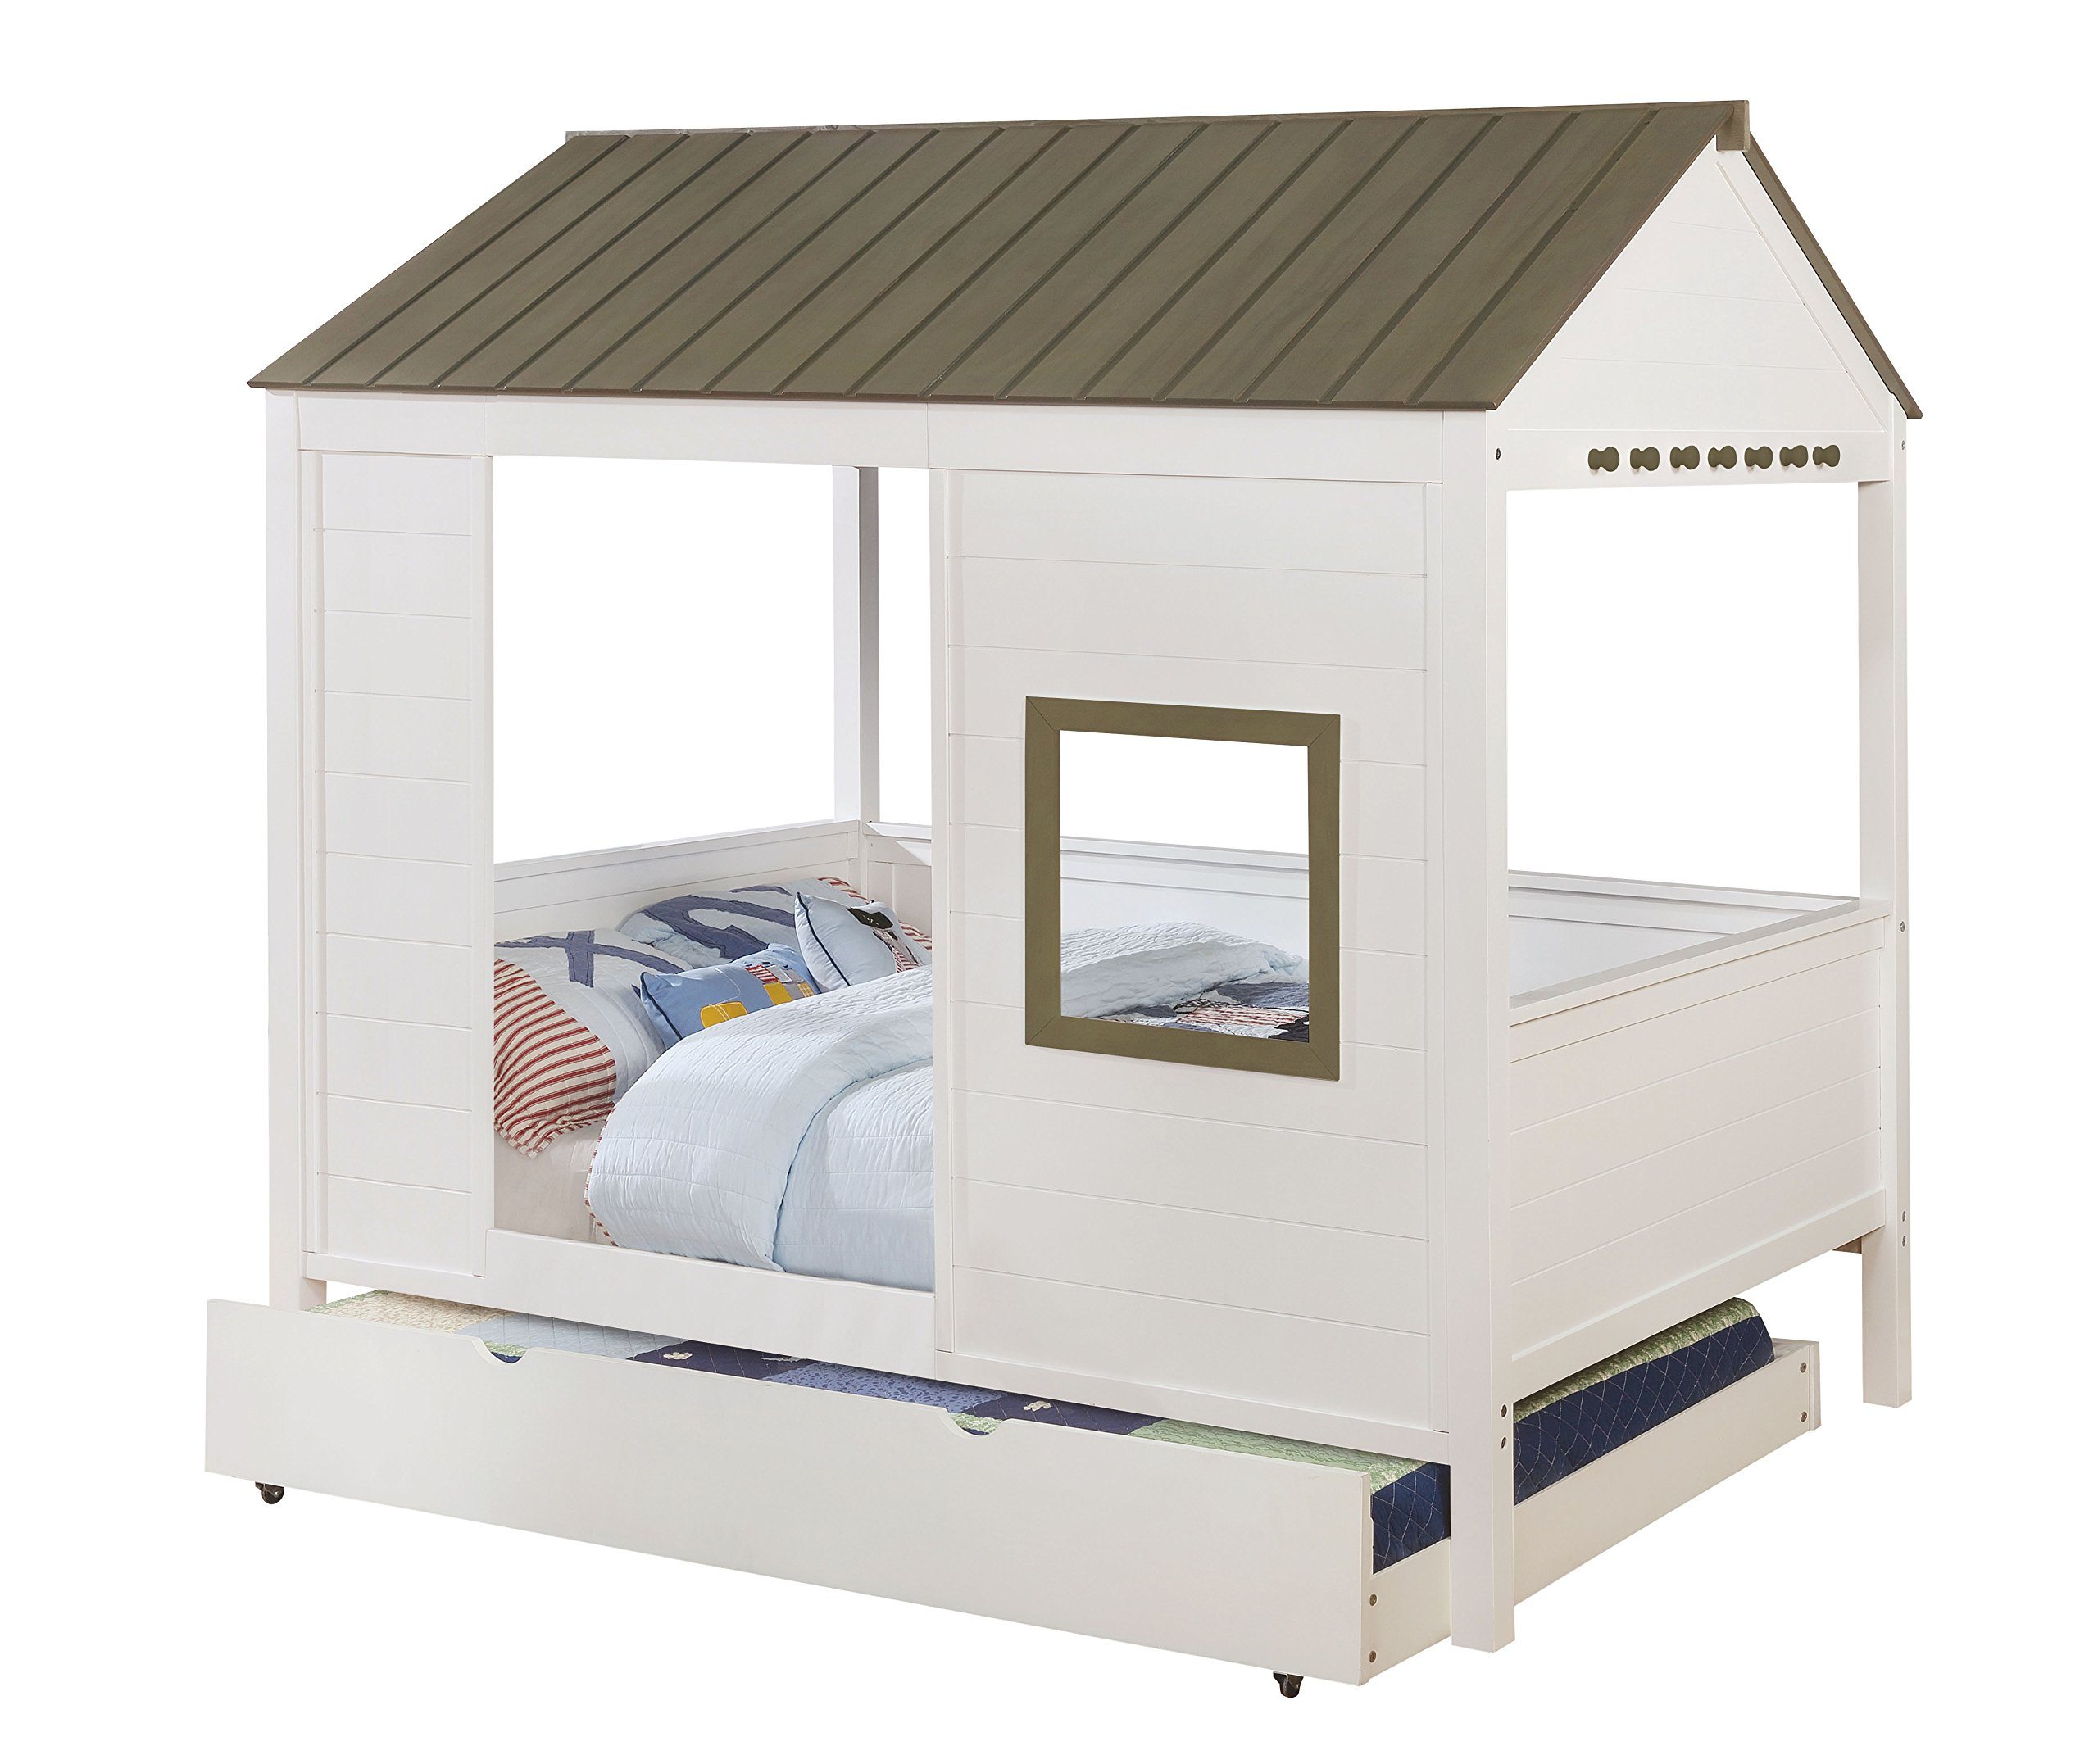 HOMES: Inside + Out IDF-7133 Corbin House Bed Novelty Full